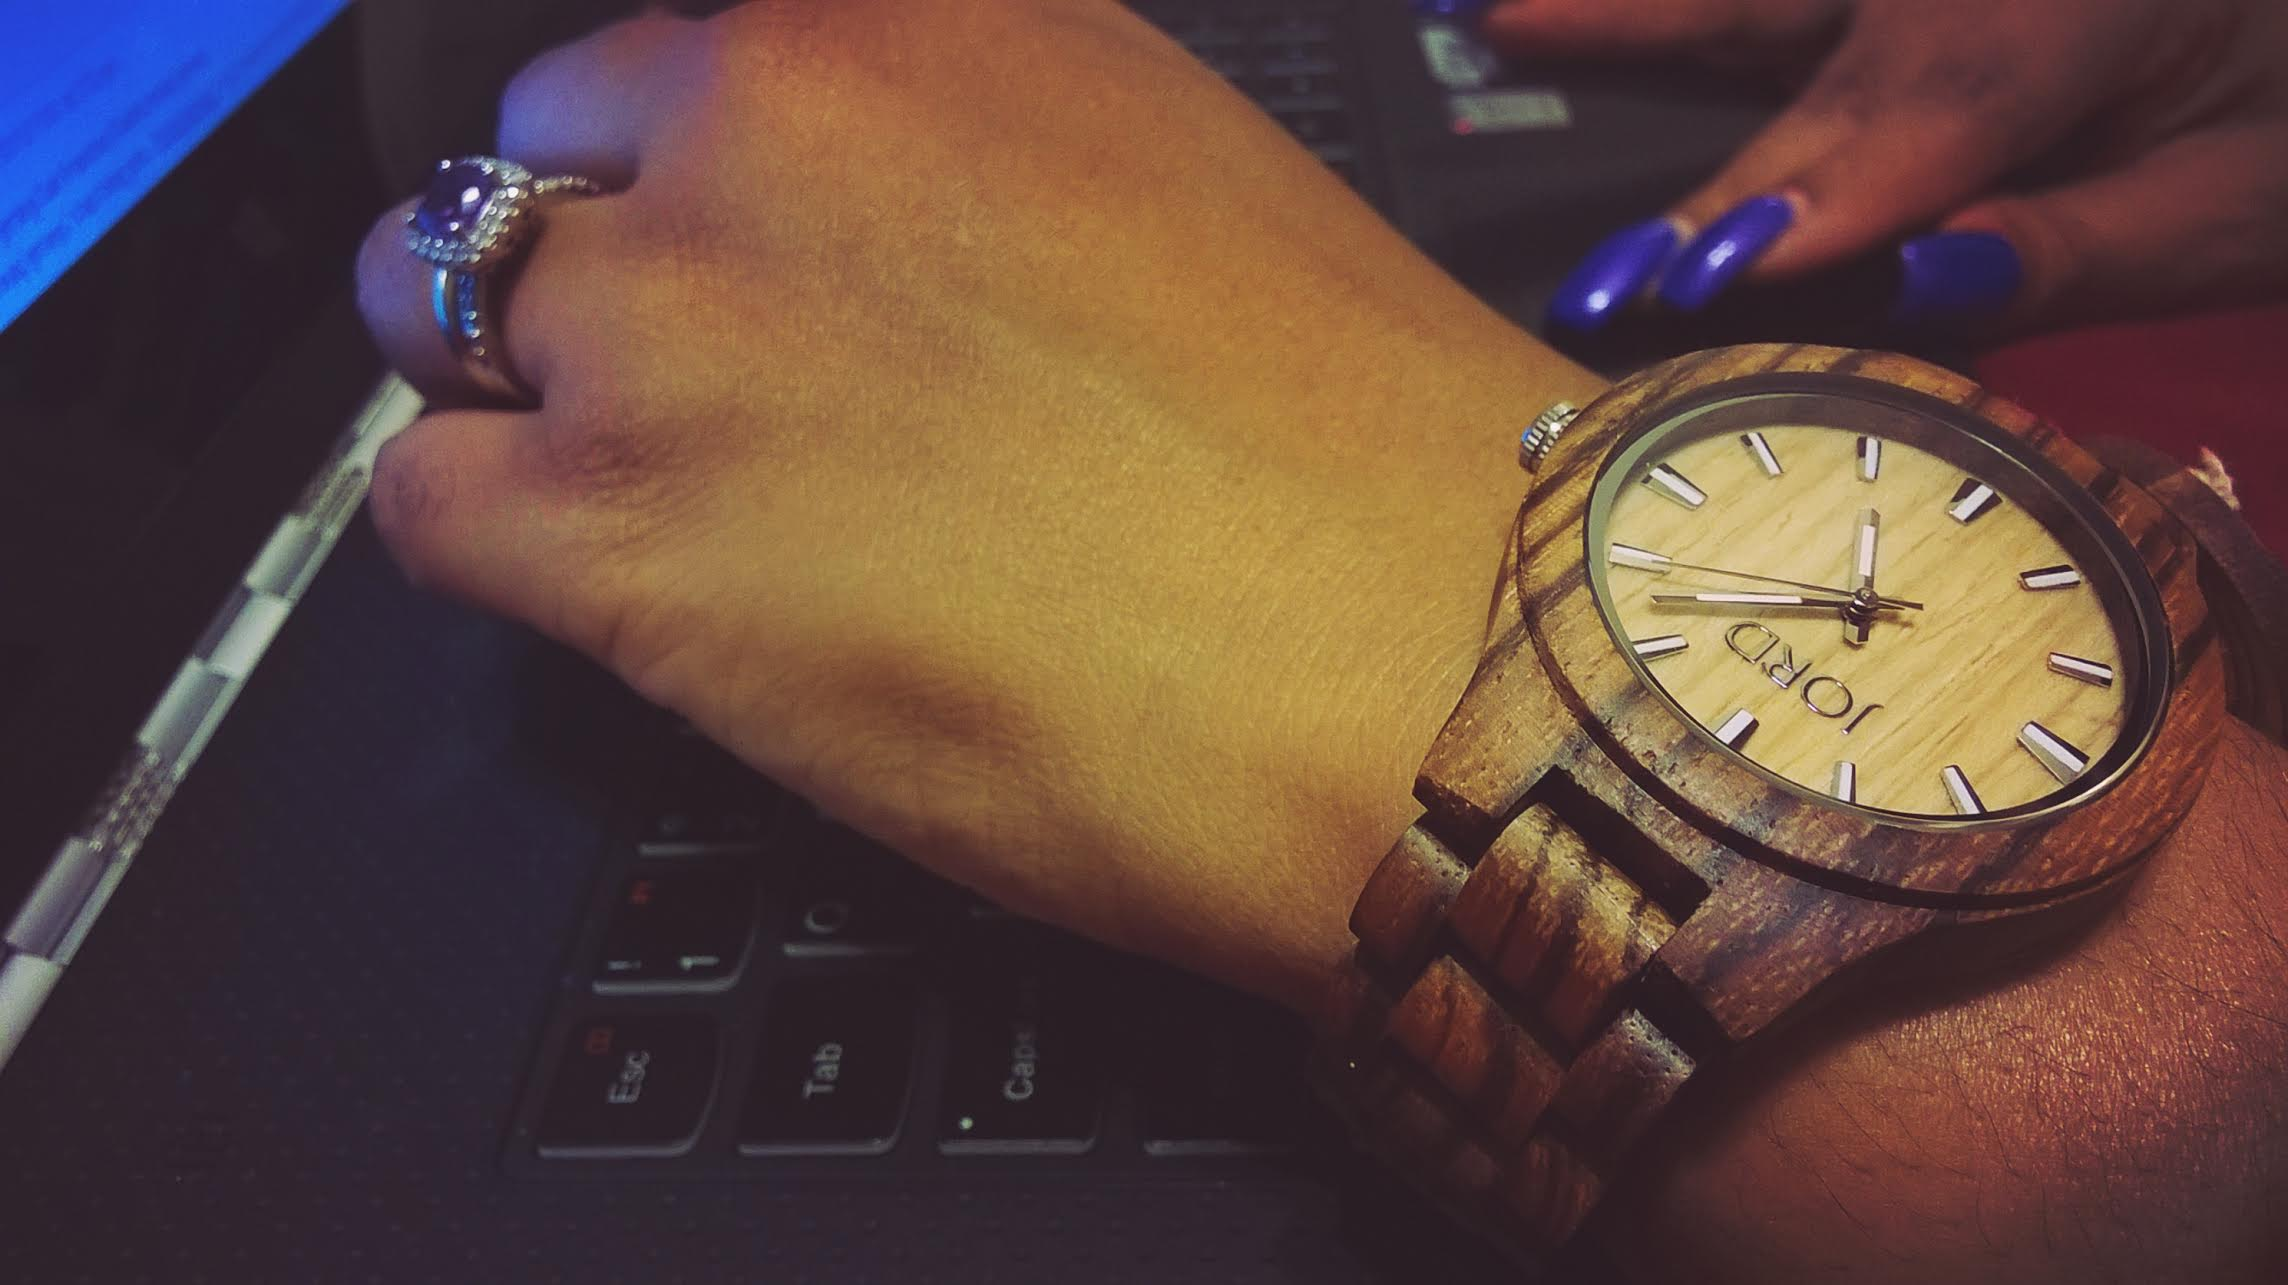 Jen on Lenovo YOGA with JORD Zebrawood and Maple Watch